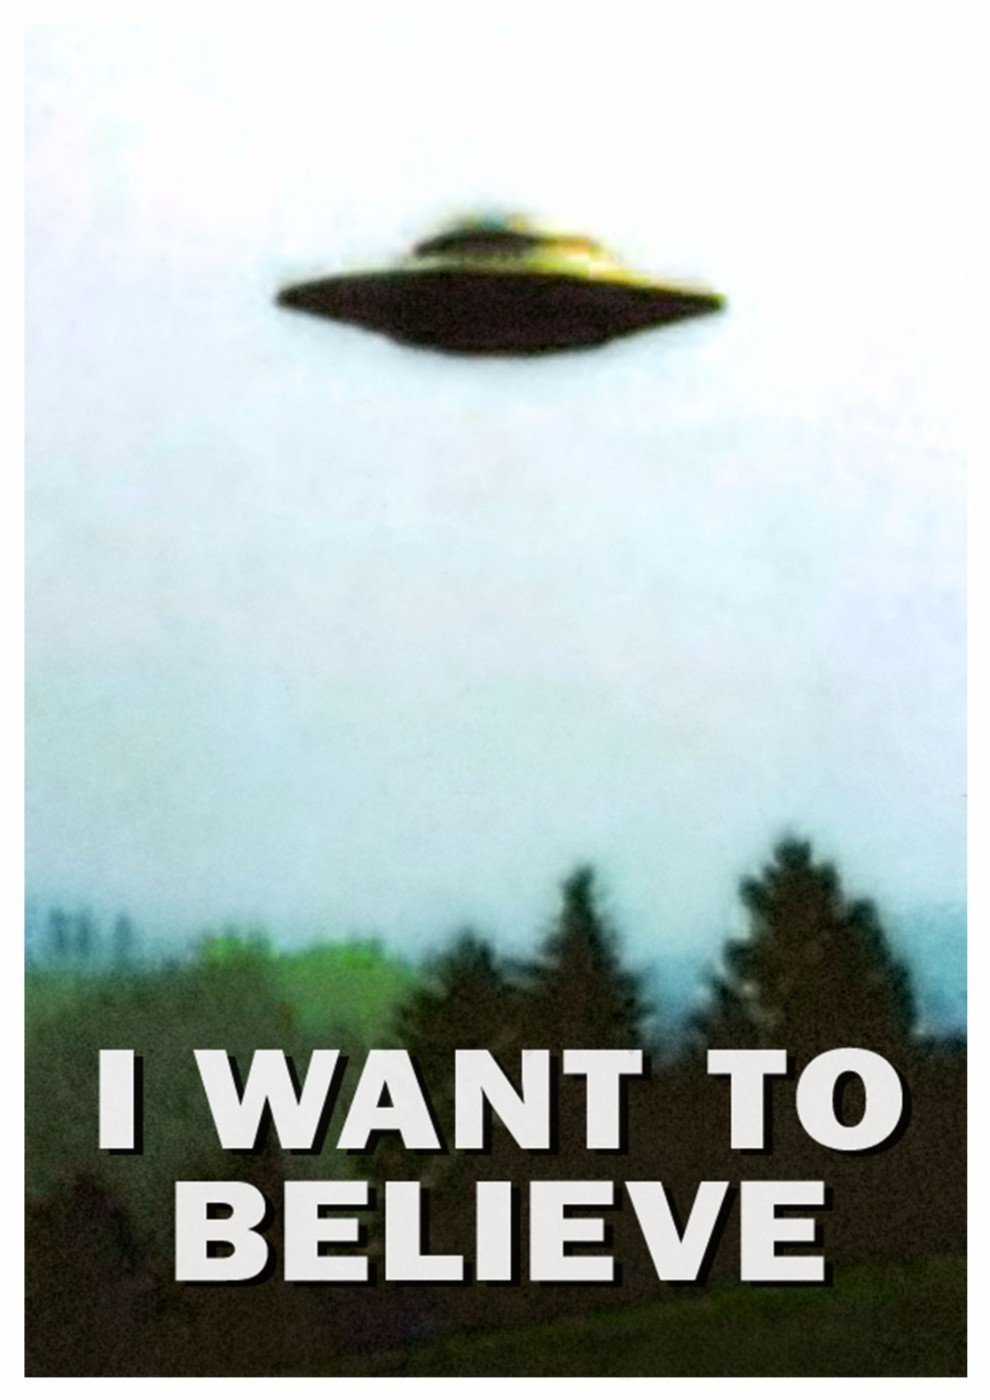 Classic TV Poster X Files Mulder I Want To BelieveX Files I Want To Believe Poster